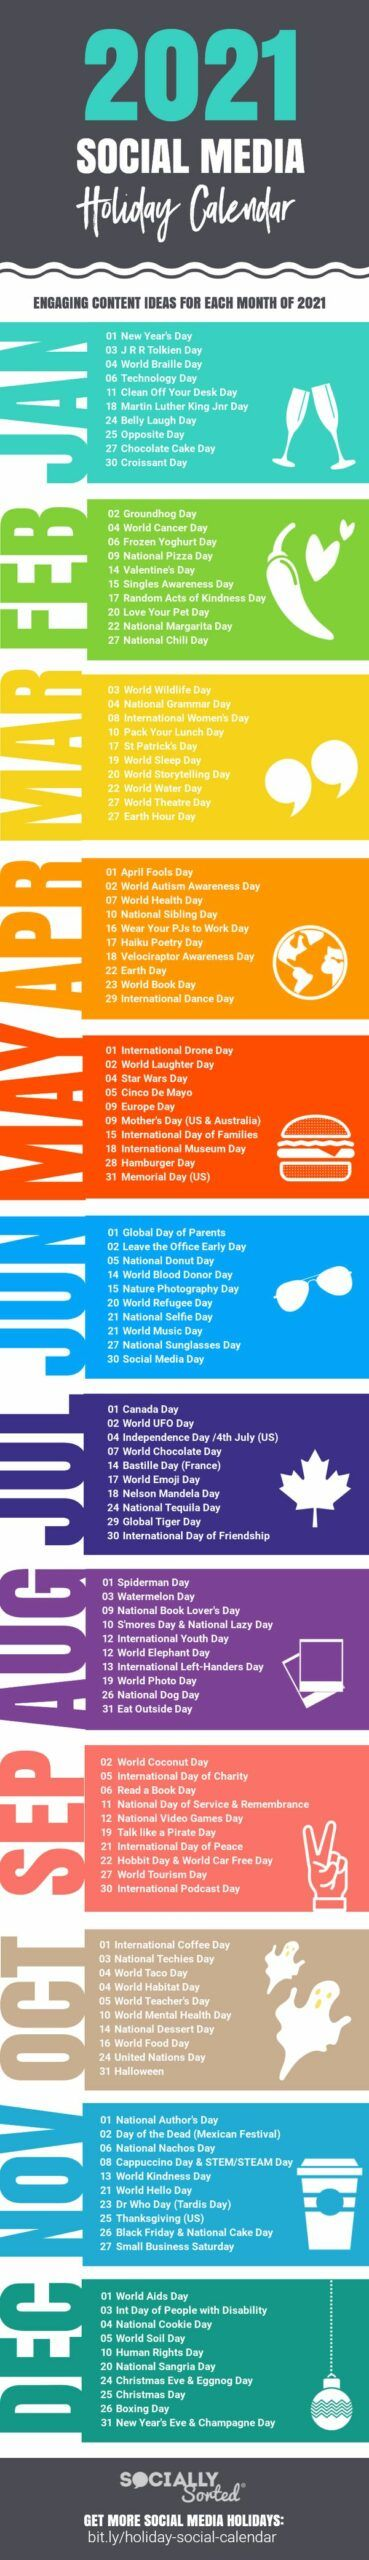 Infografia - 2021 Social Media Content Calendar Packed with Post Ideas [Infographic]